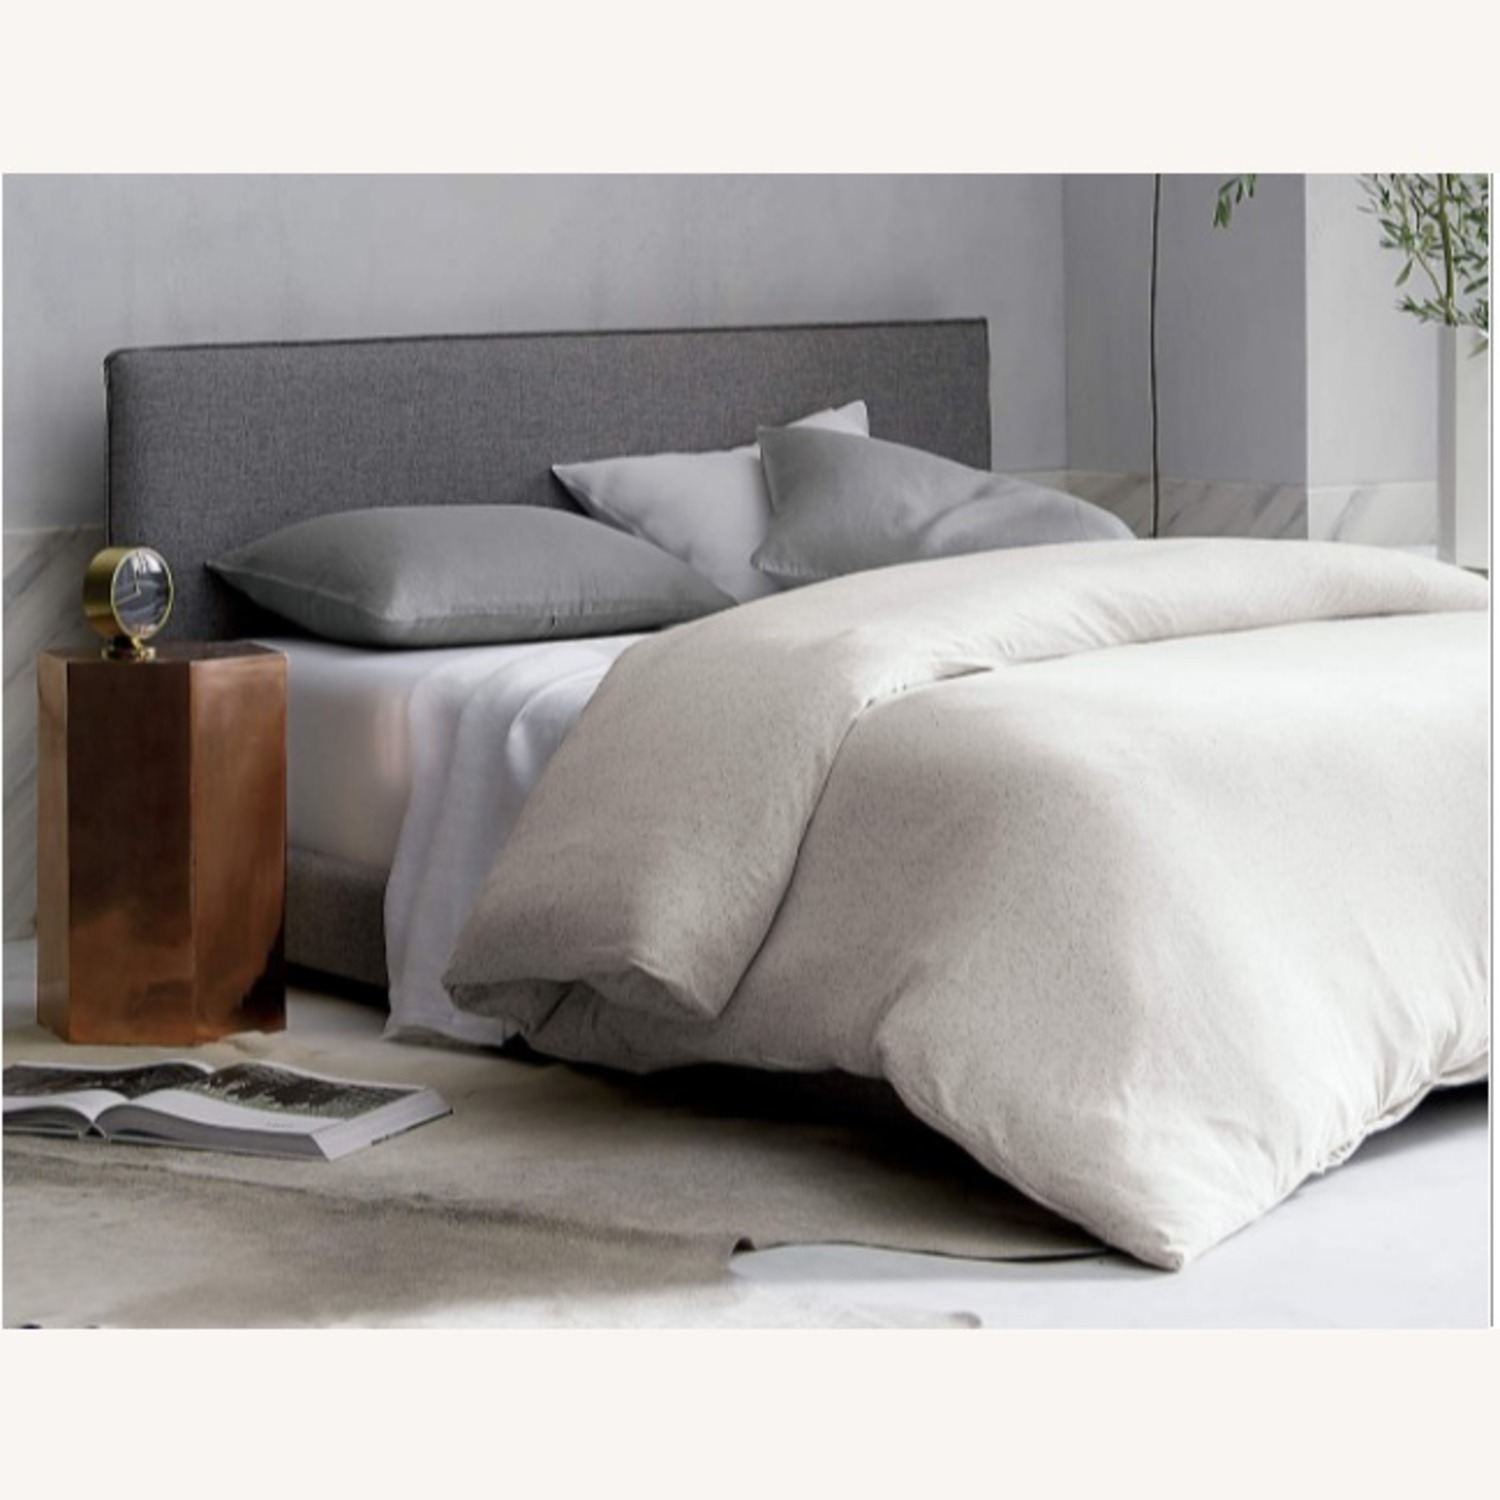 CB2 Gray Queen Bed Frame - image-3